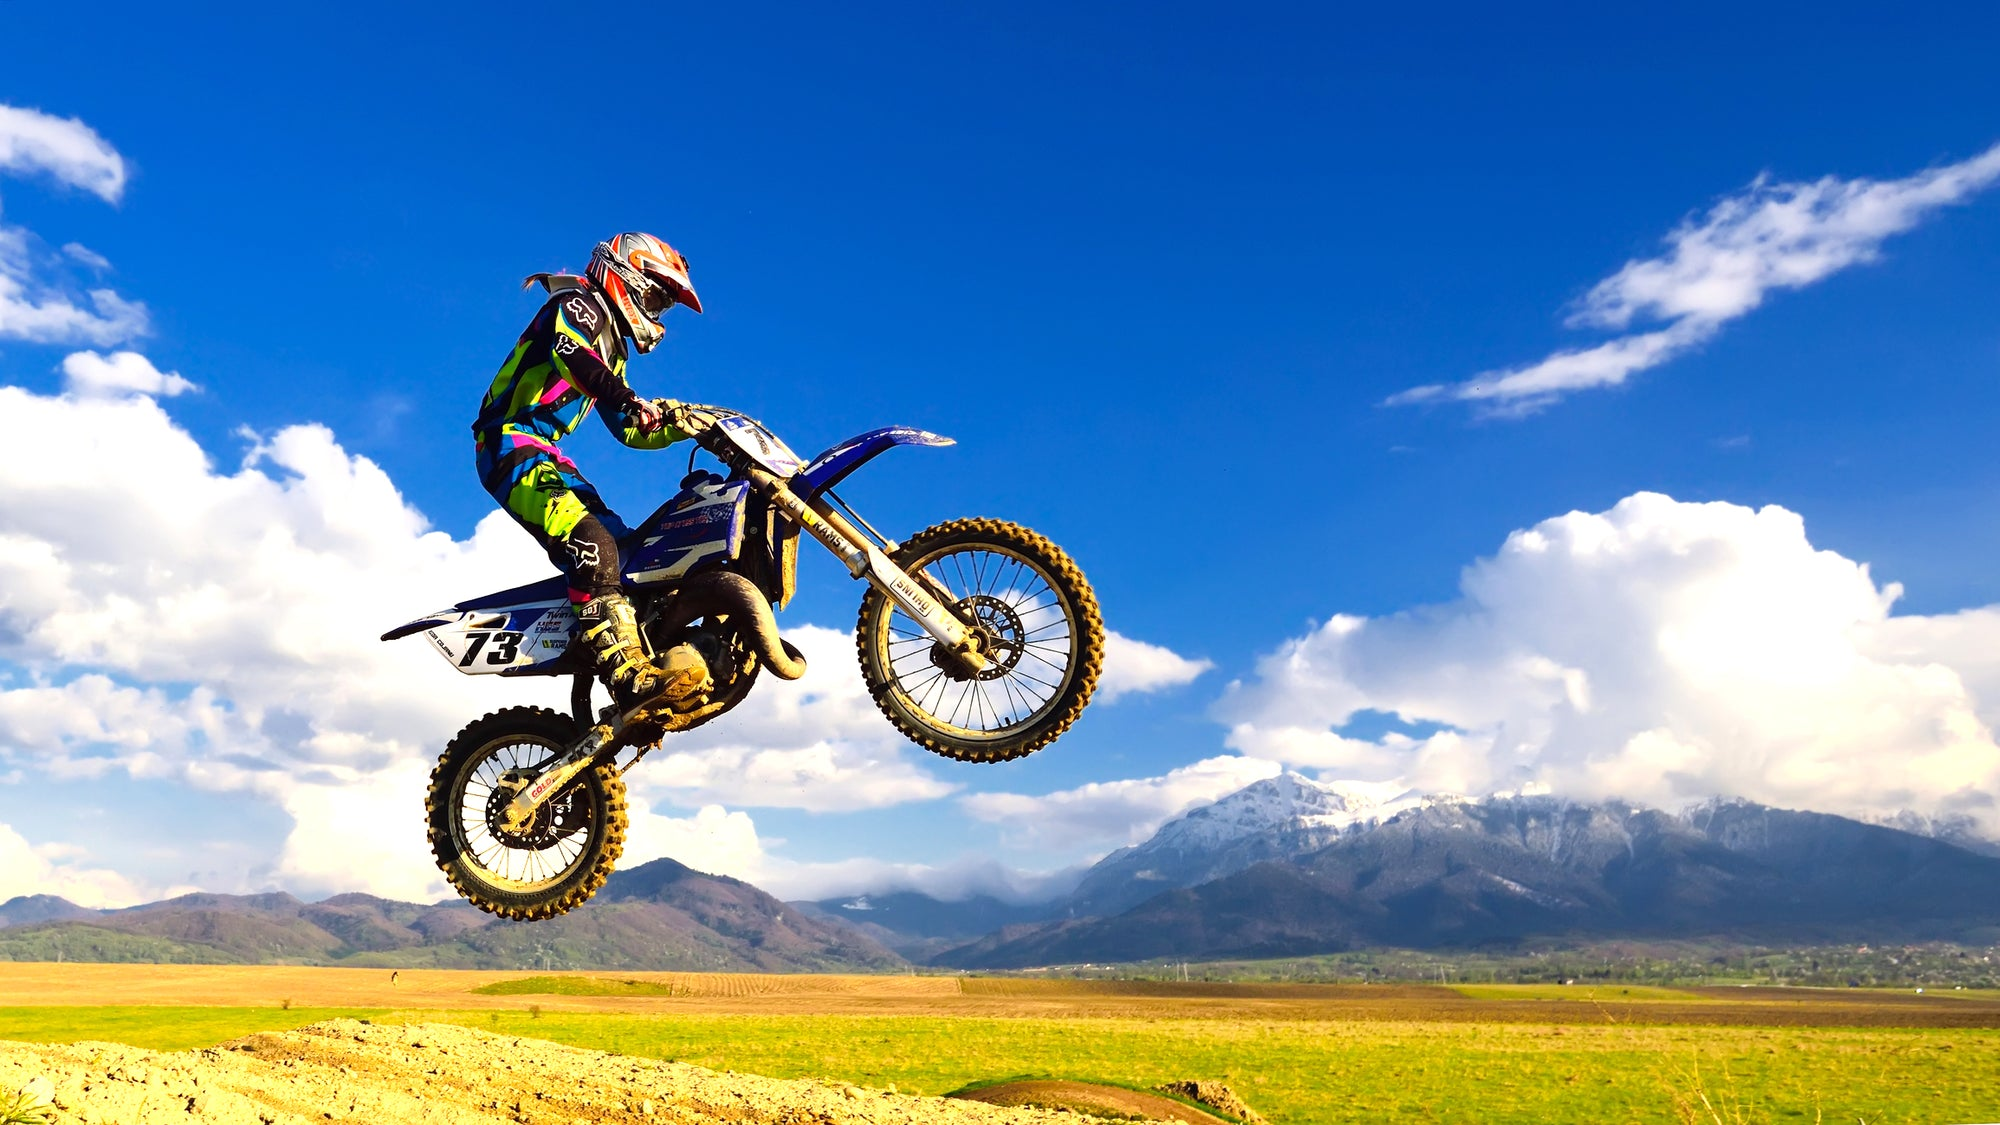 Oxygen: The New Power Fueling Motocross